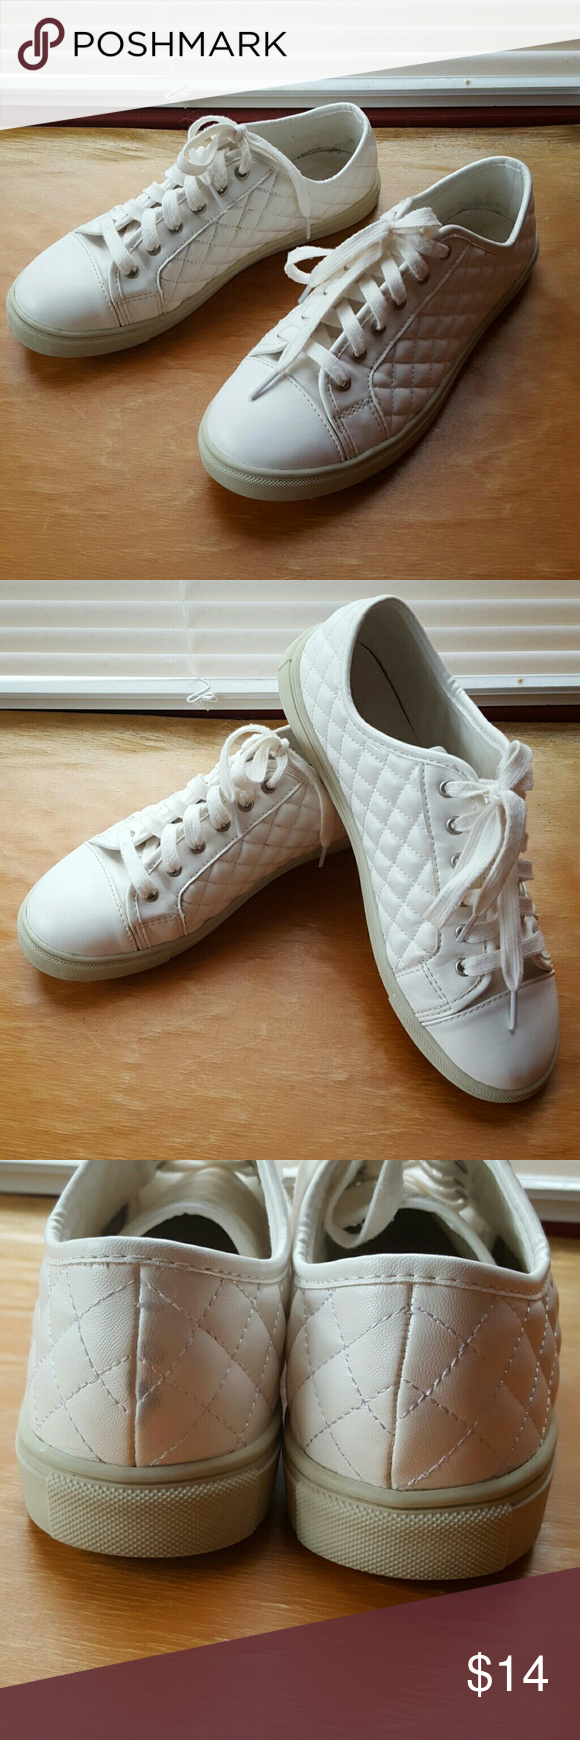 Madden Girl quilted white sneakers in